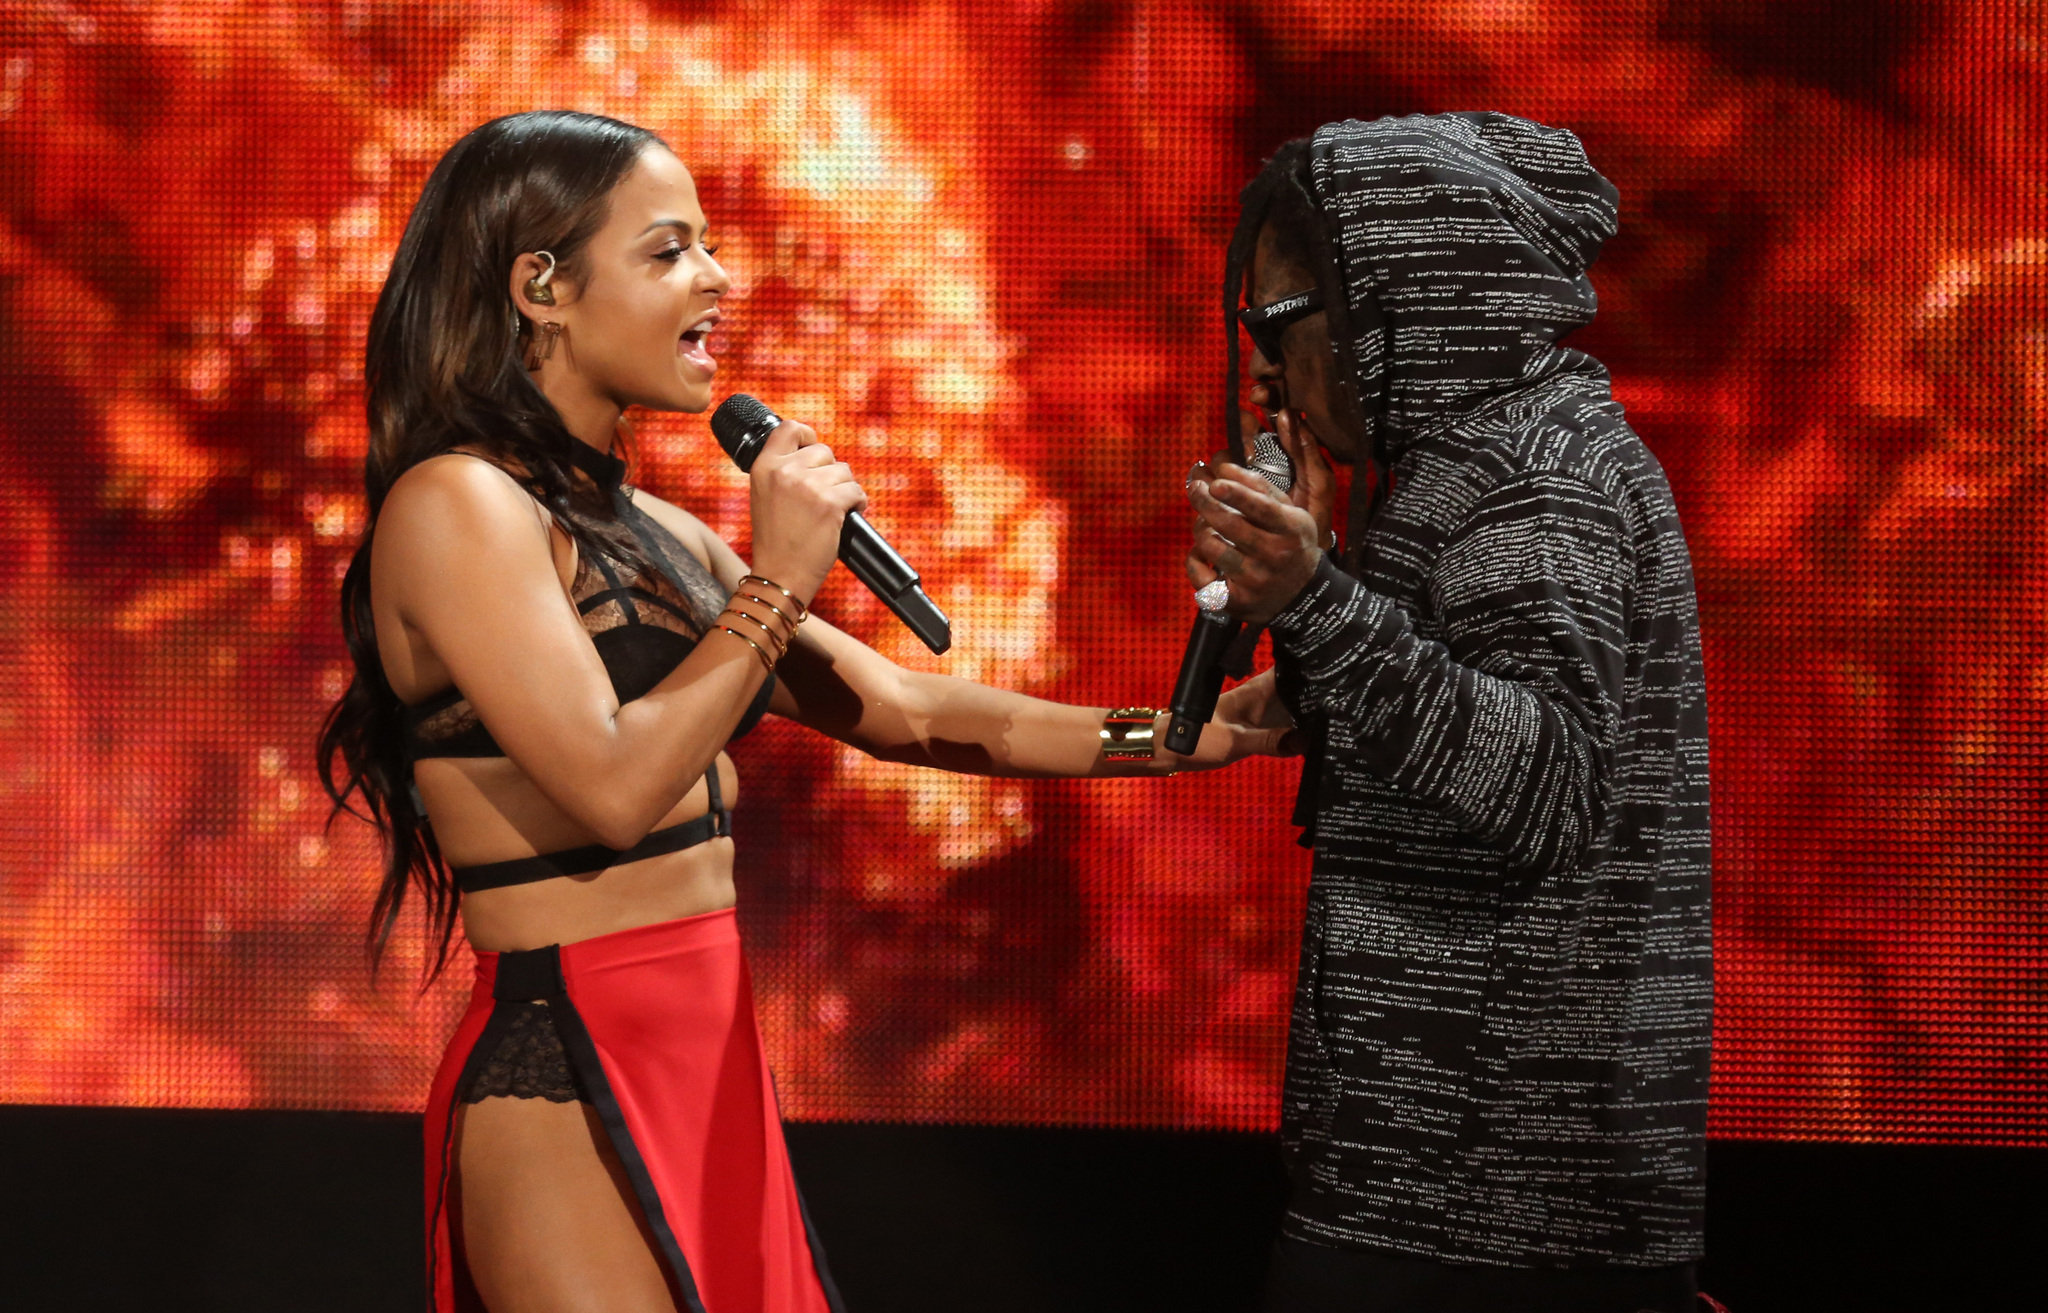 Lil Wayne and Christina Milian Are in a Special Relationship